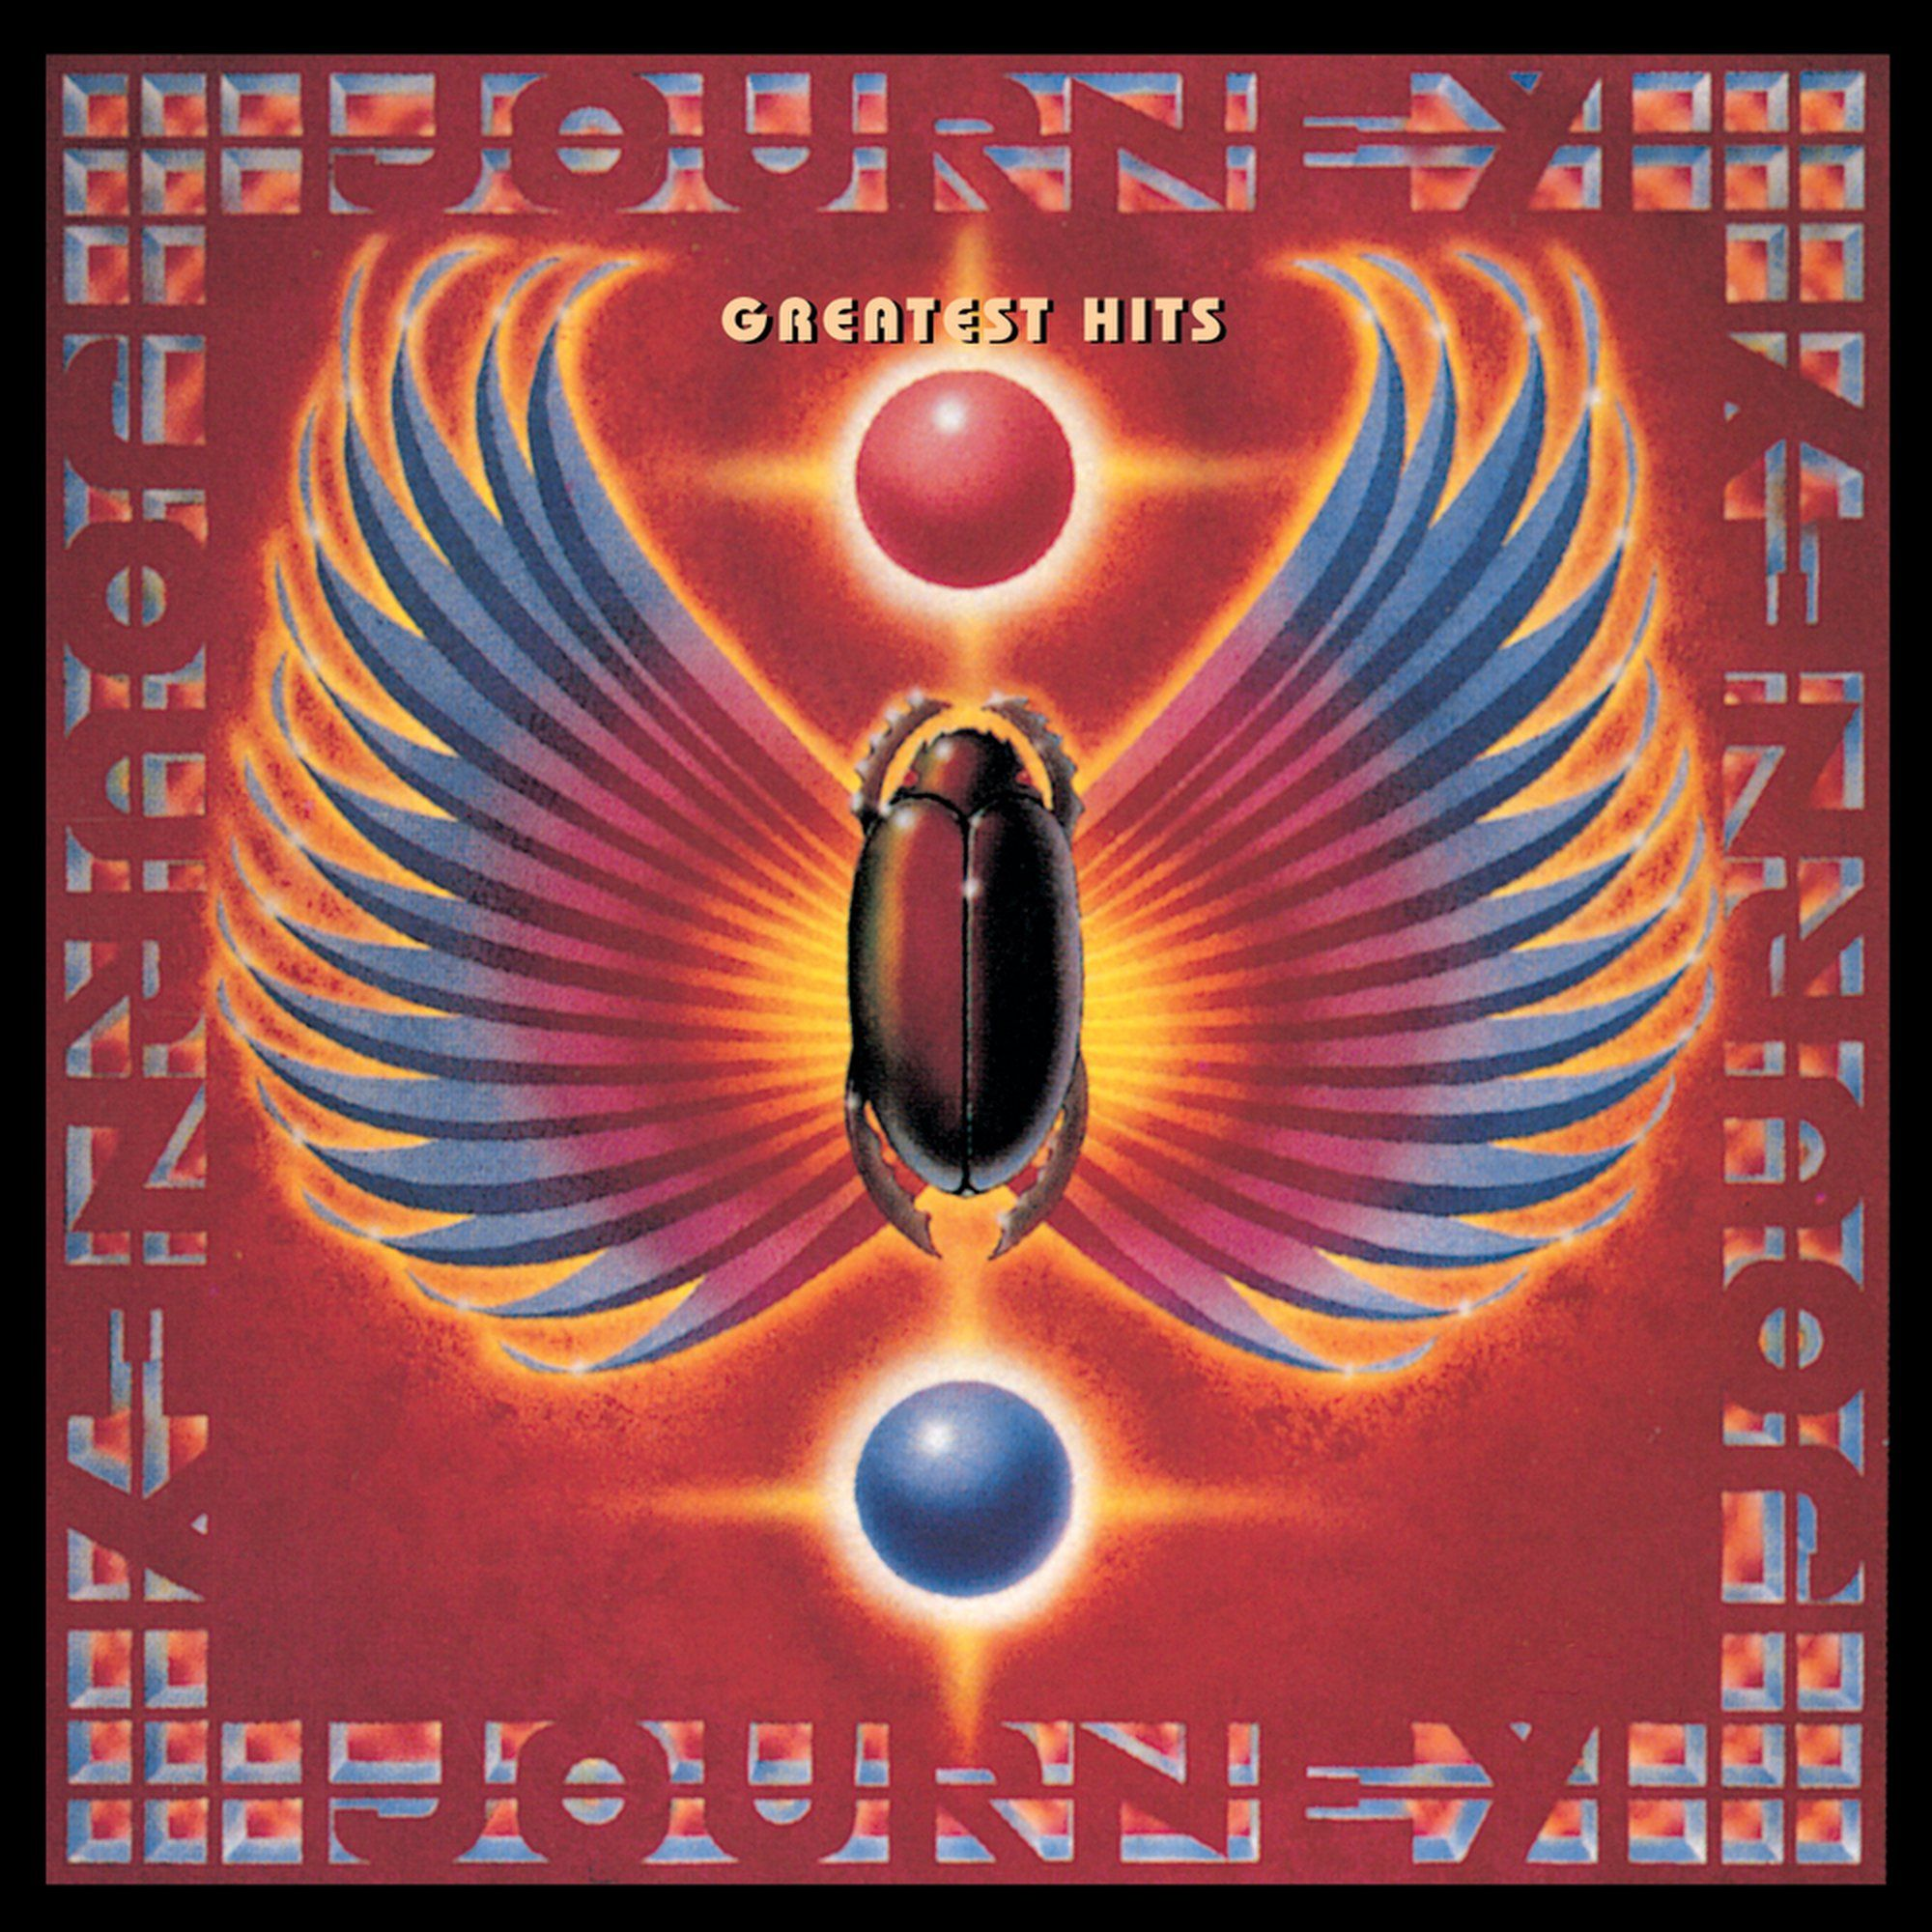 Journey - Greatest Hits album cover